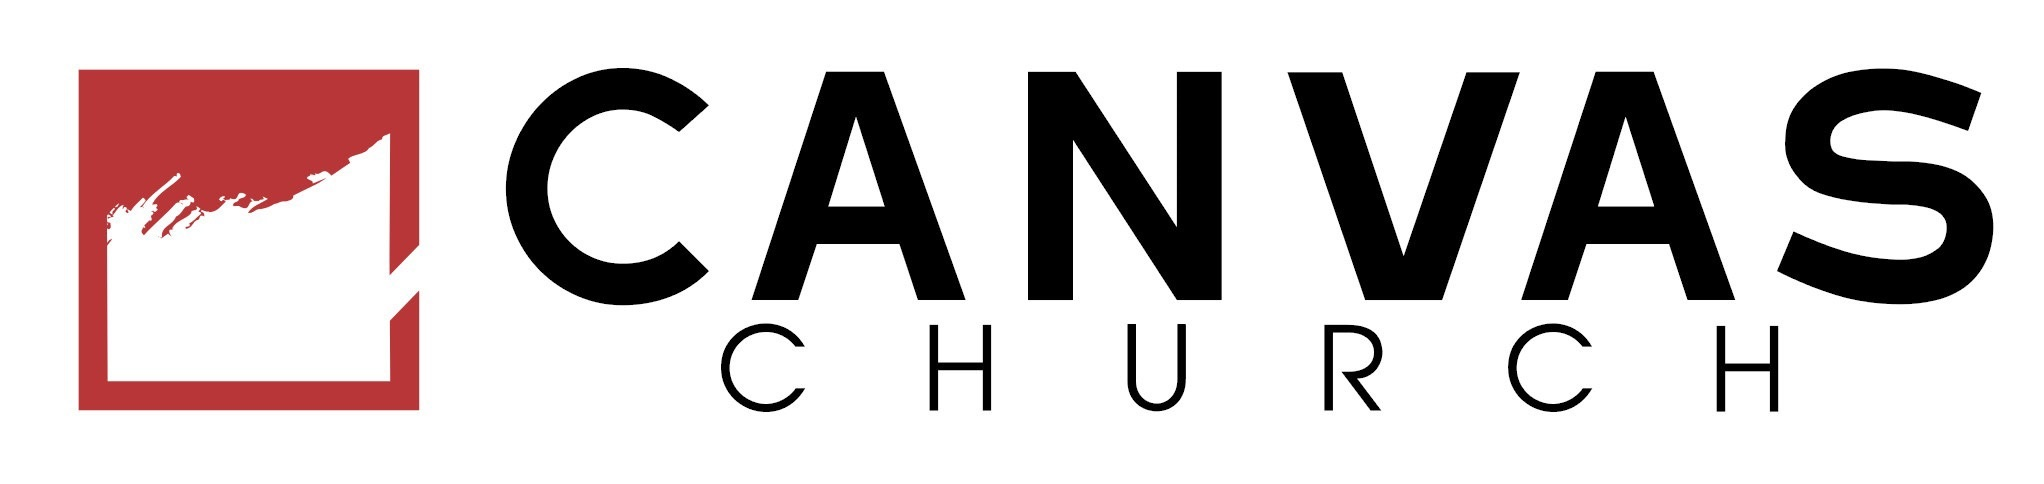 Canvas Church Logo